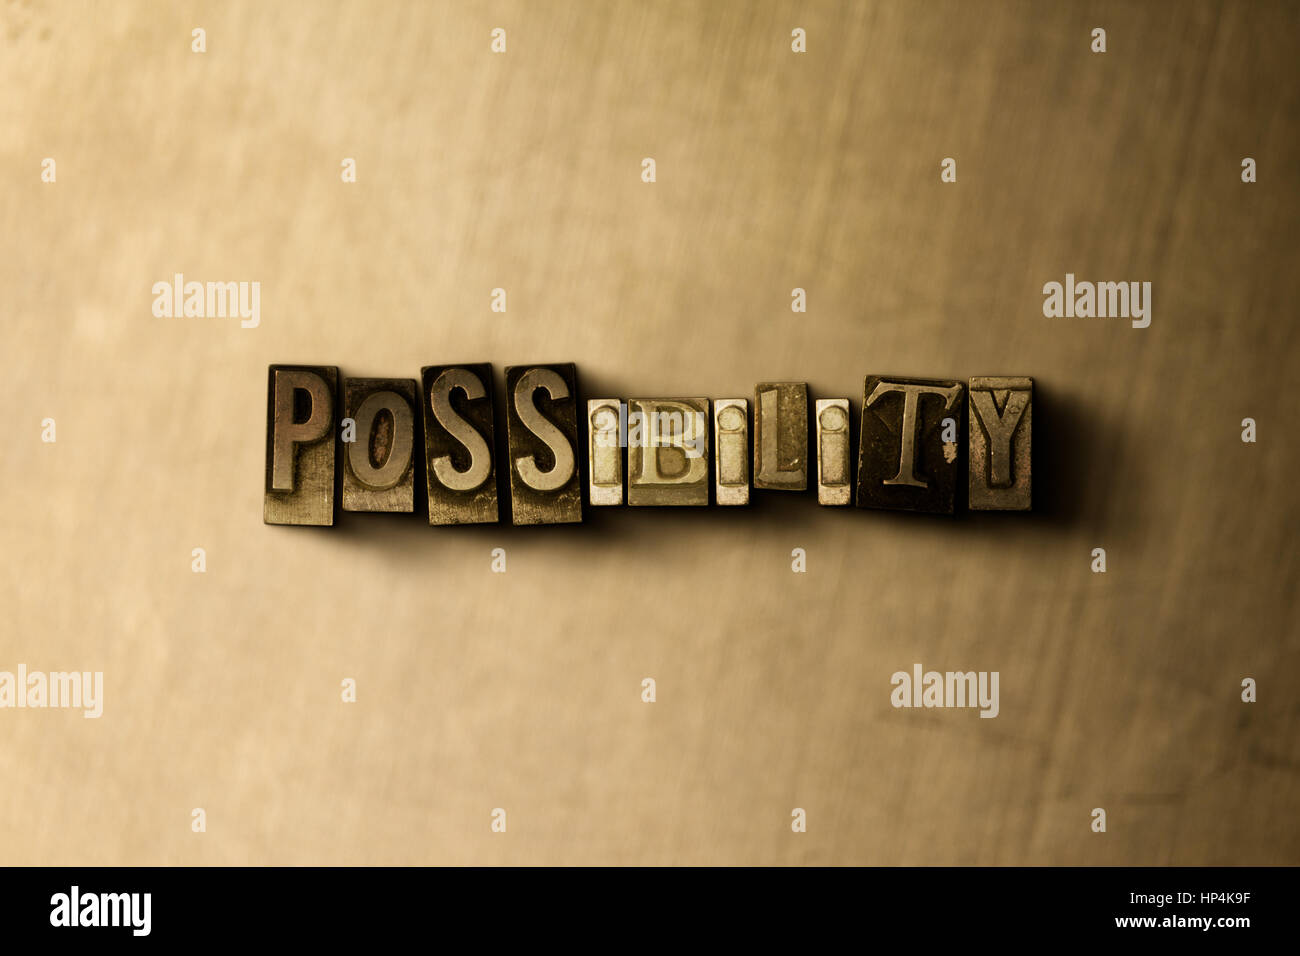 POSSIBILITY - close-up of grungy vintage typeset word on metal backdrop. Royalty free stock illustration.  Can be - Stock Image